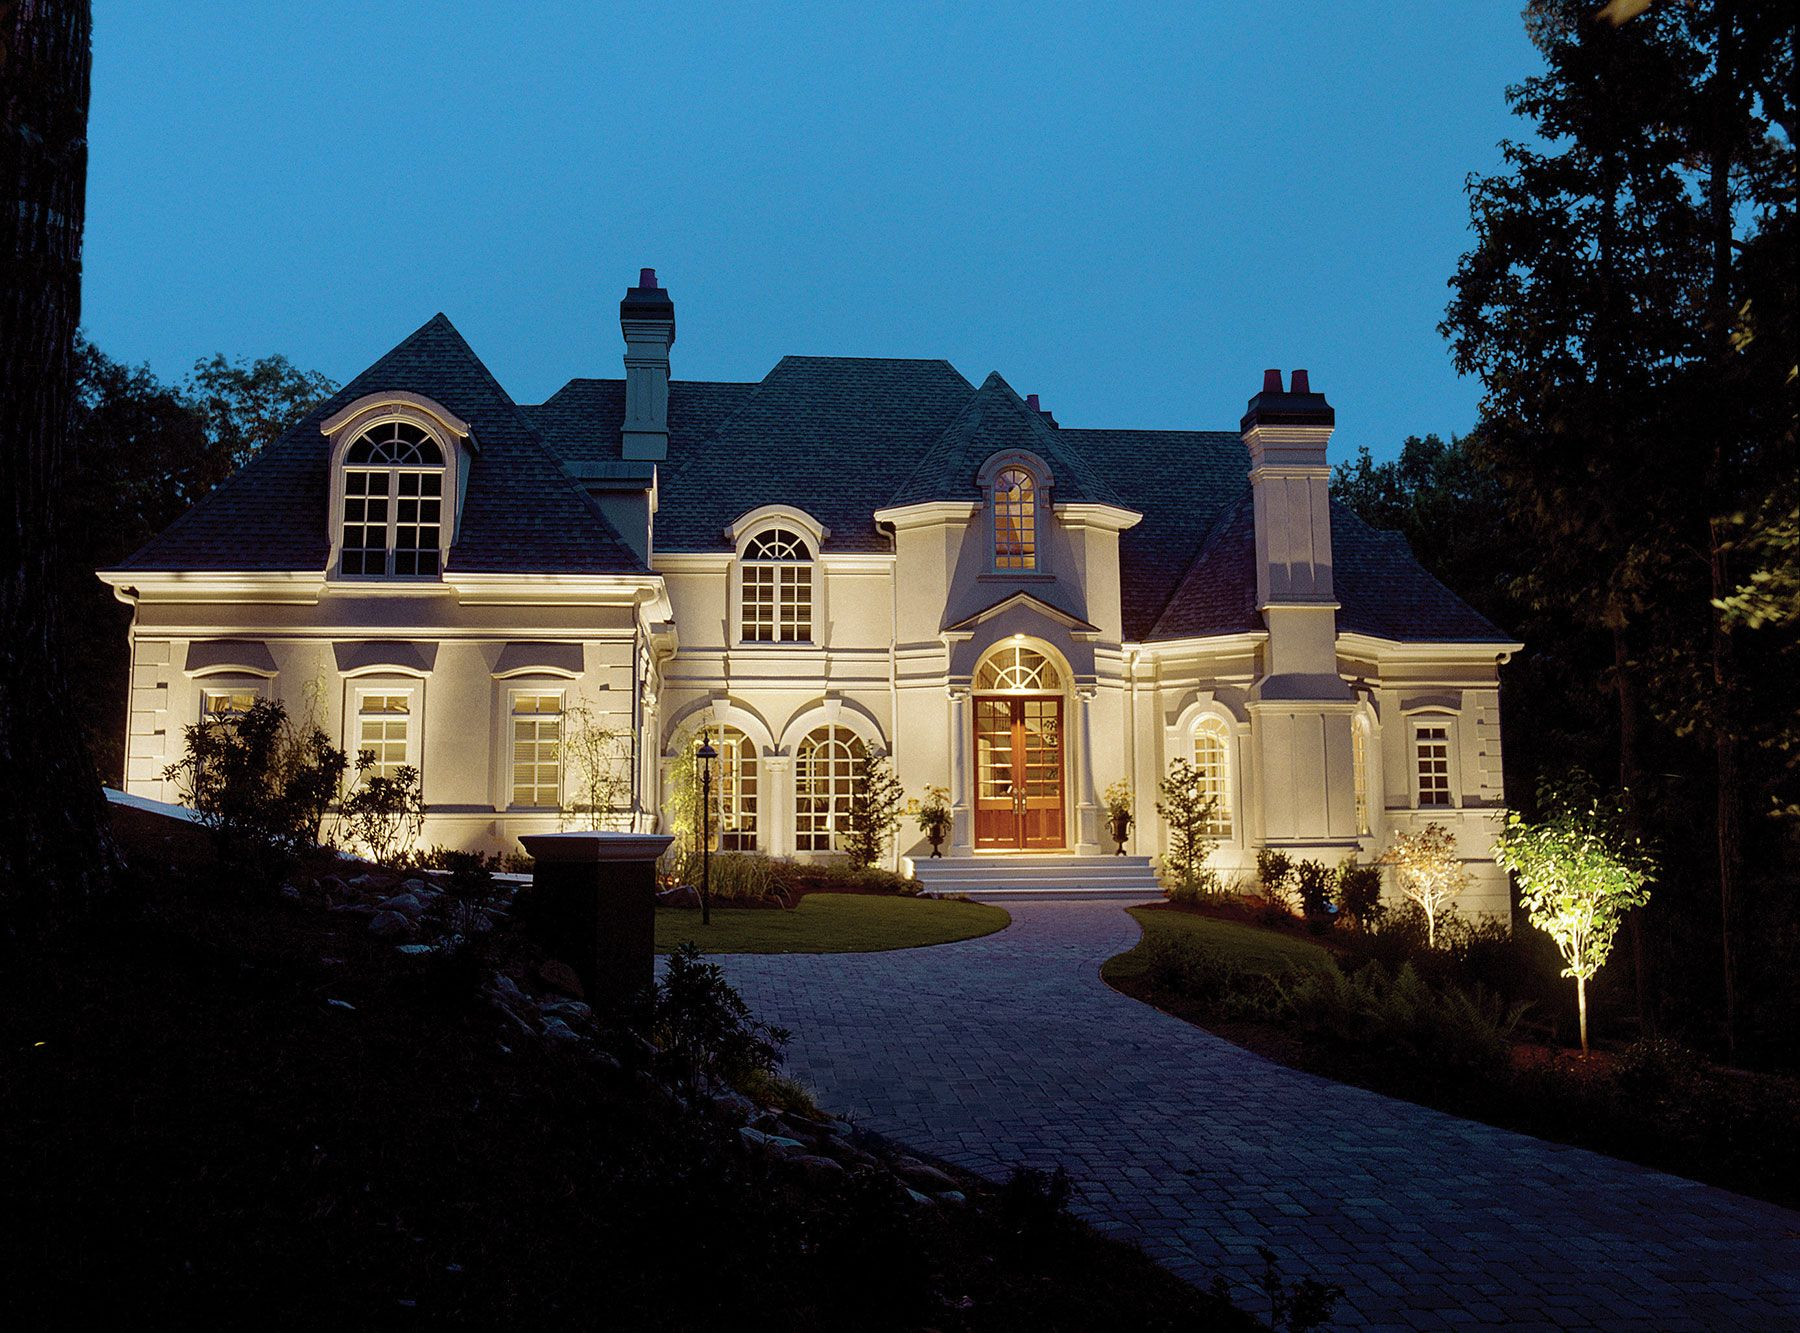 Custom Designed For This Stately Georgia Home, The Outdoor Lighting  Perspectives Design Plan Includes An